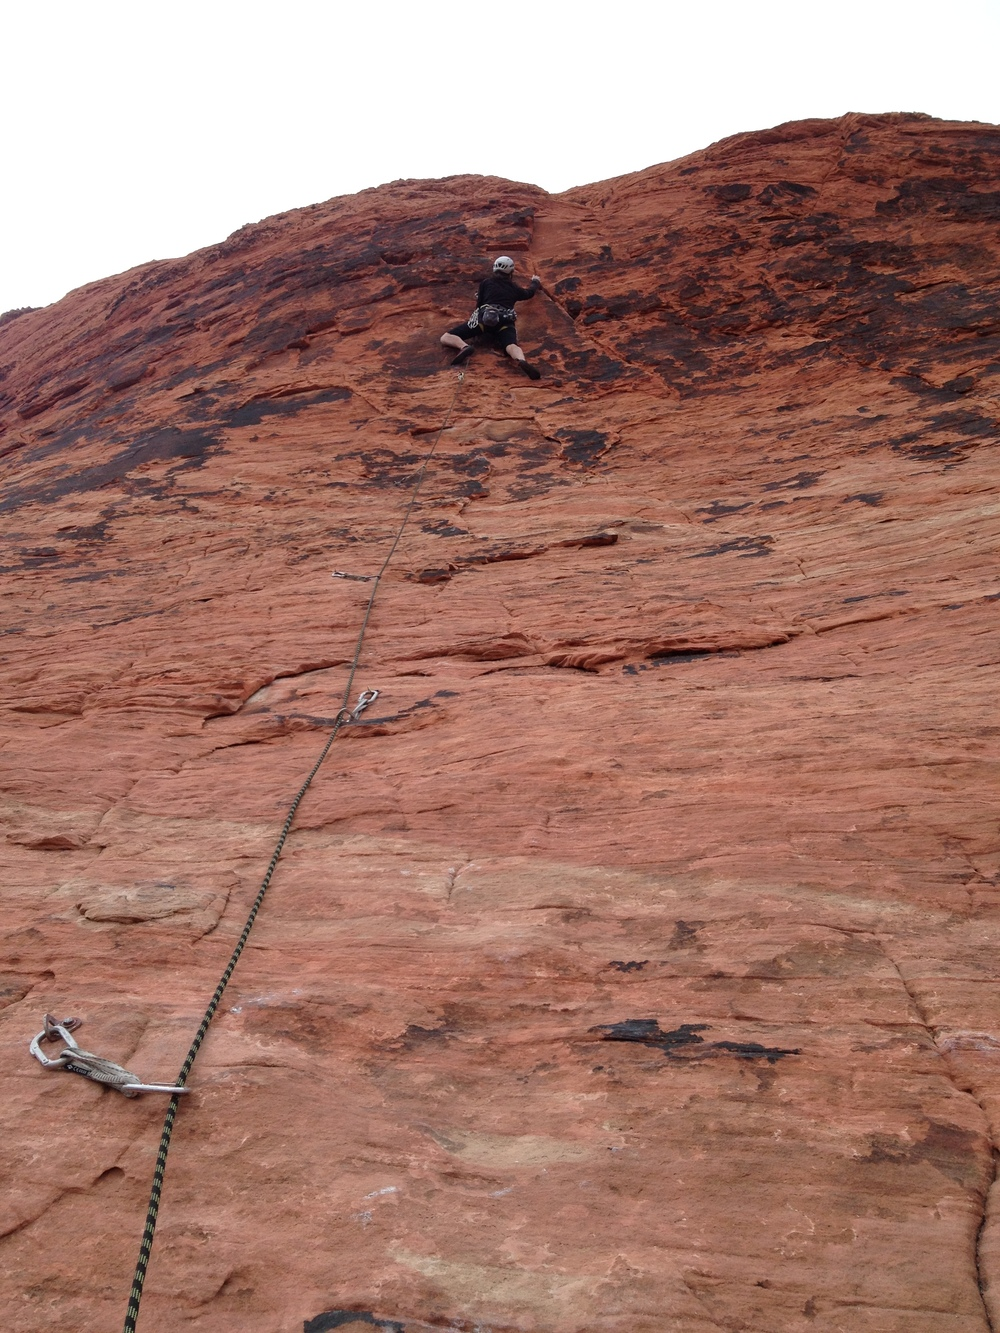 Getting above the boulder line in Red Rocks Canyon (NV)